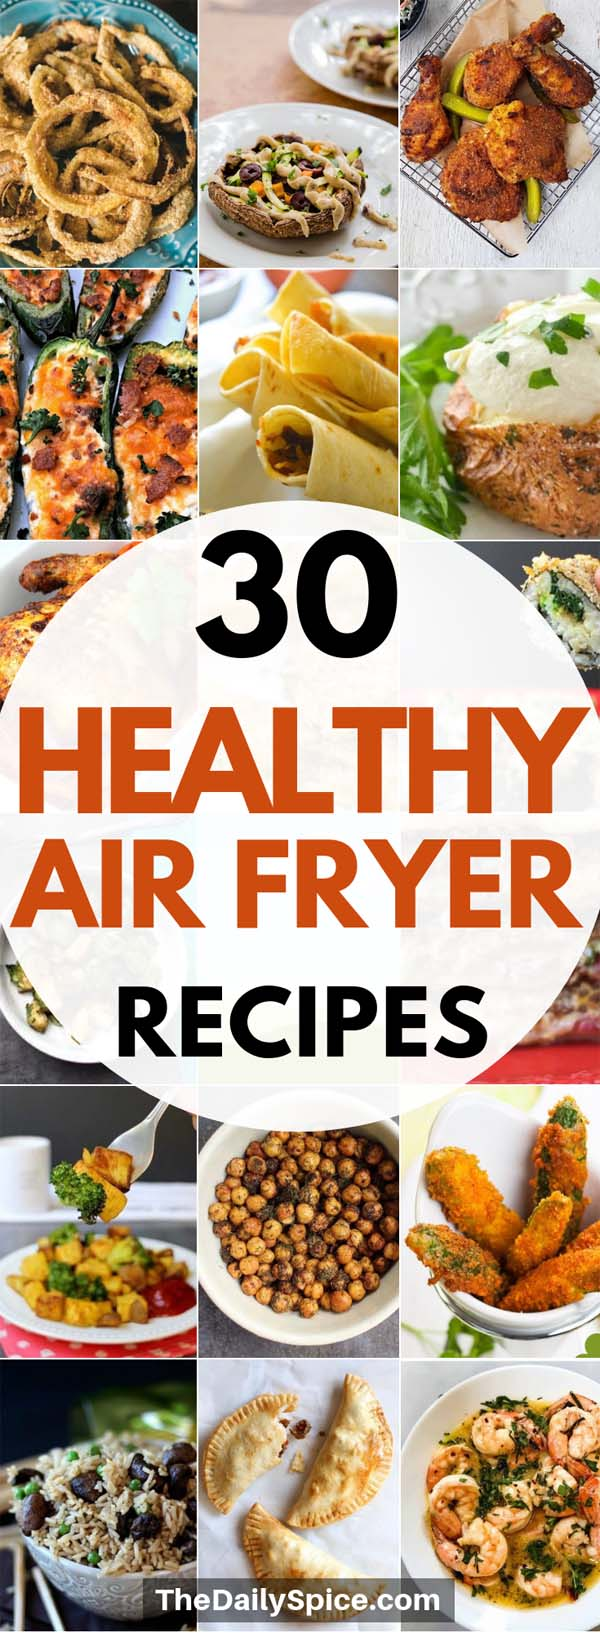 Healthy Air Fryer Recipes and Meals